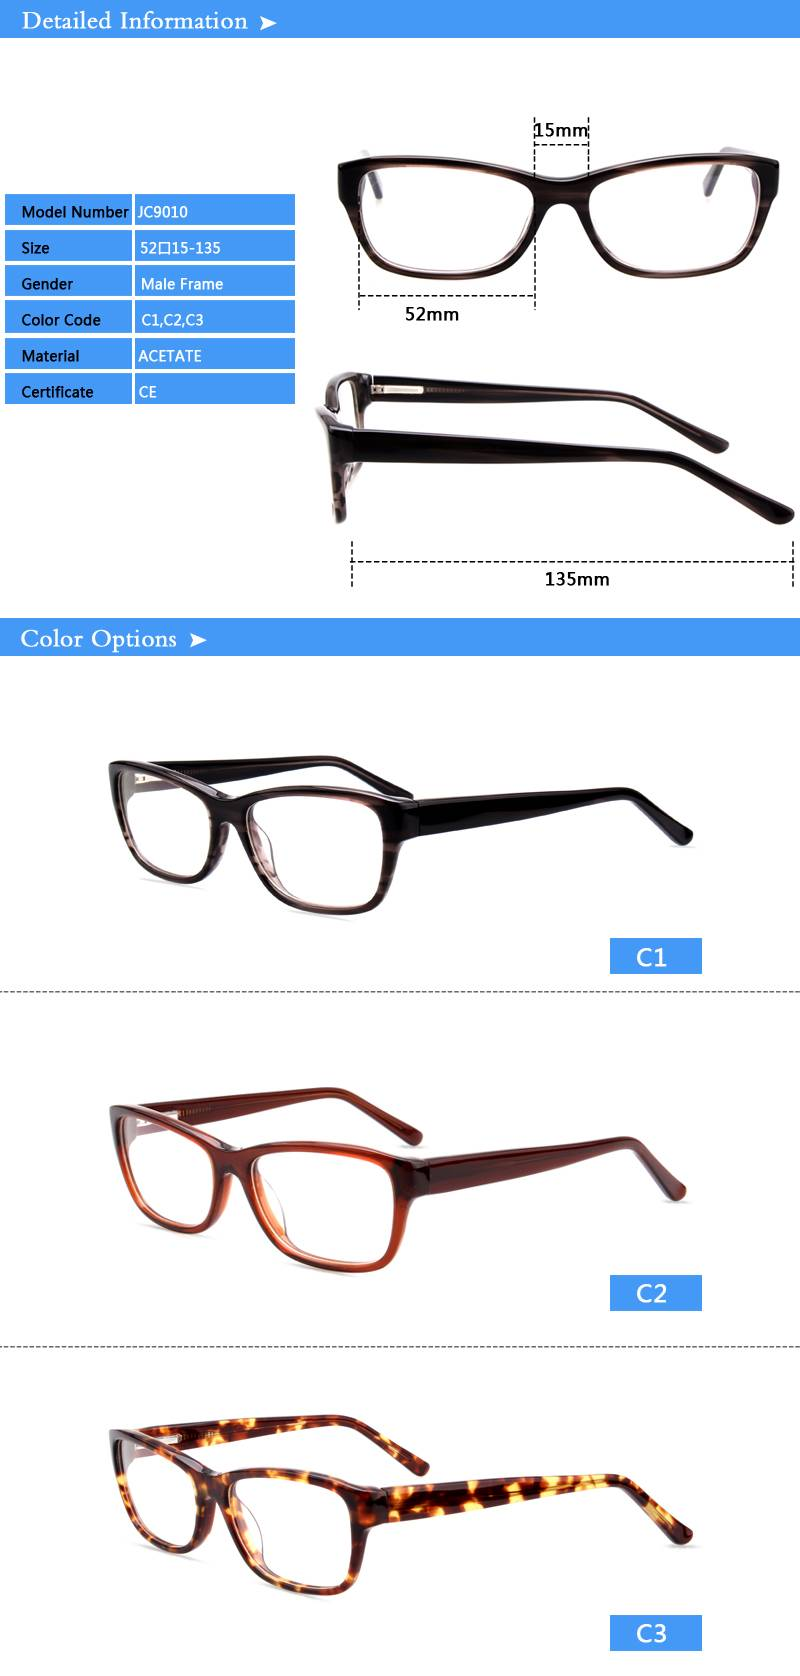 Fashion design acetate eyewear optical frame JC9010 ready in stock